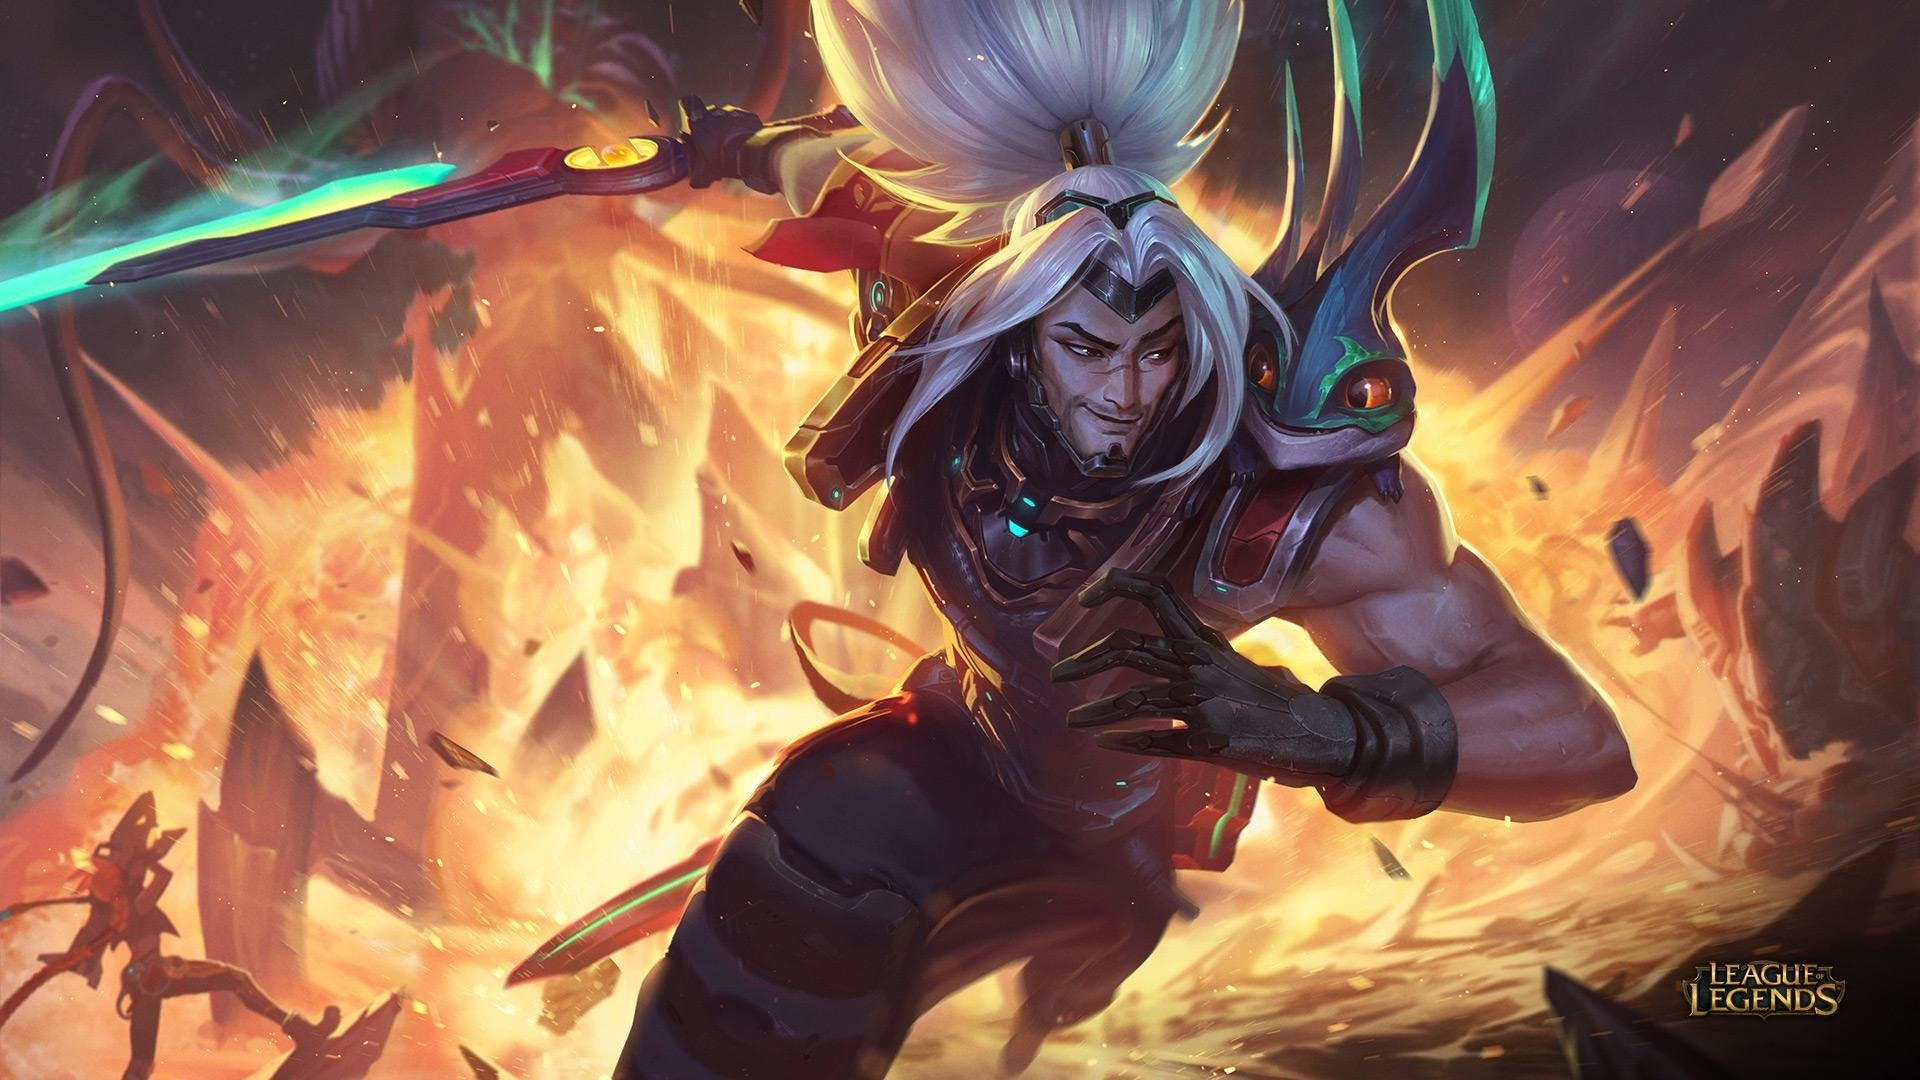 Odyssey Yasuo Hd Wallpaper Background Image 1920x1080 Id 946535 Wallpaper Abyss